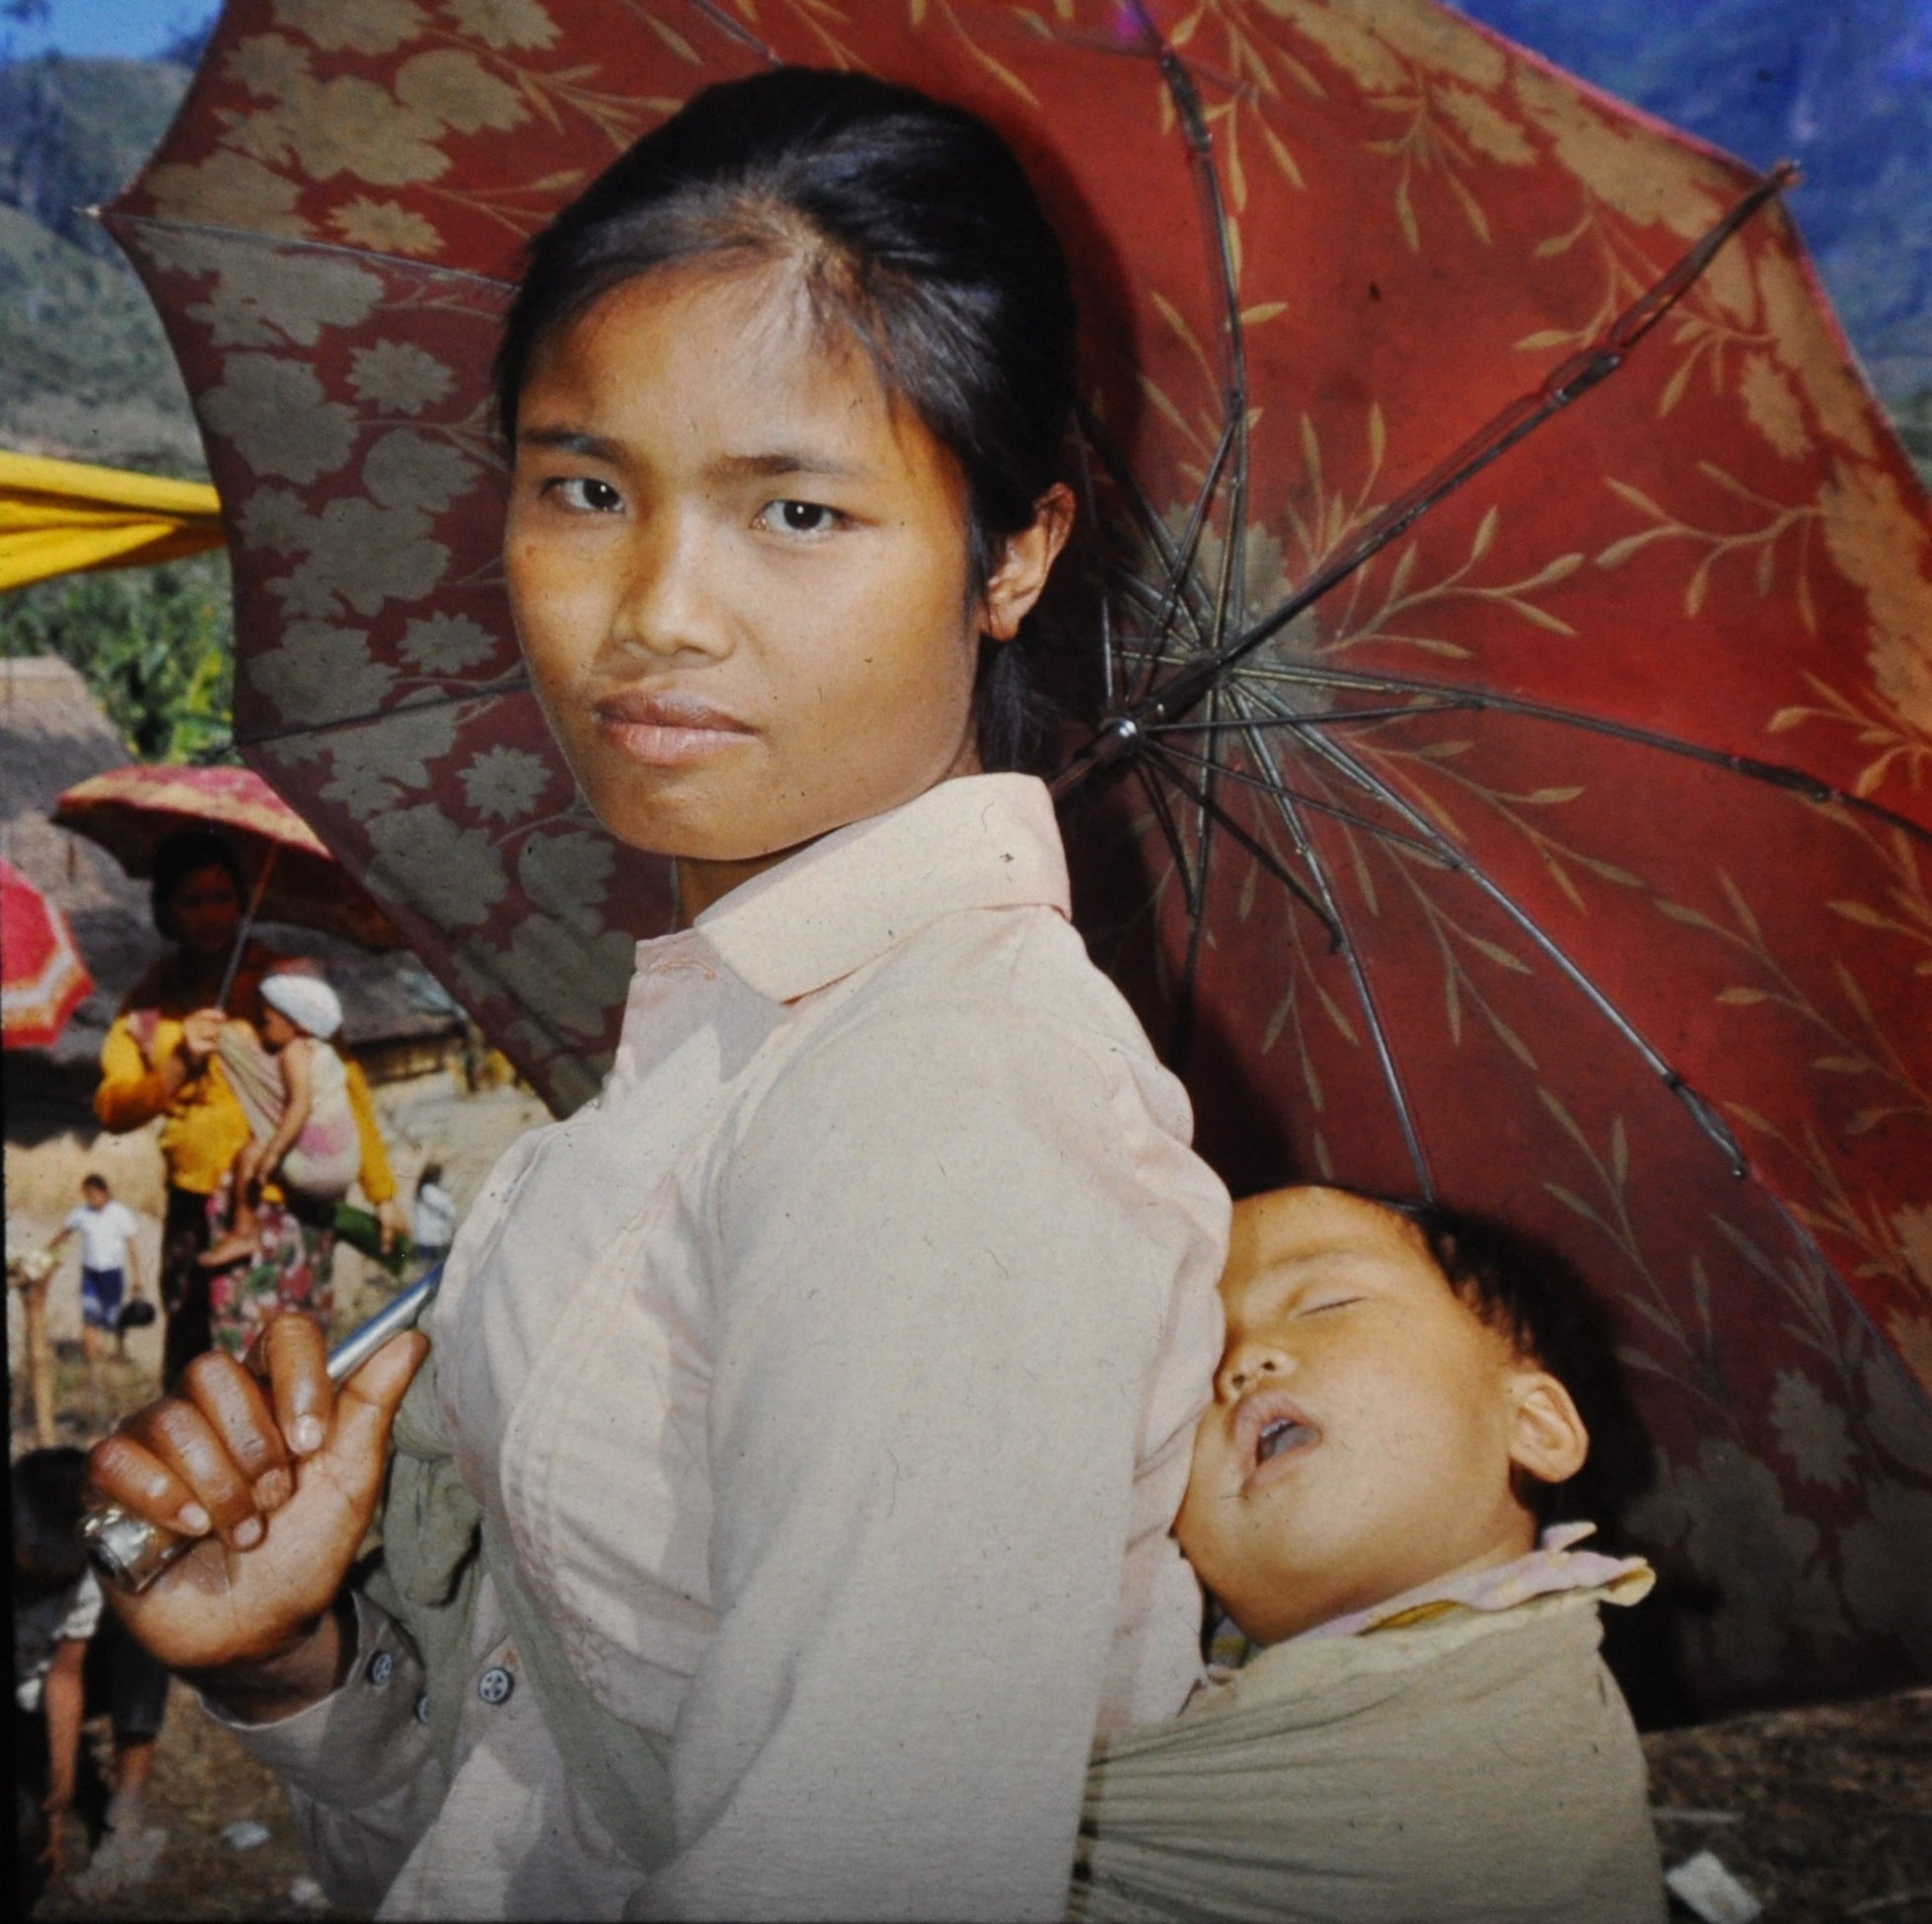 Lao refugee lady with child